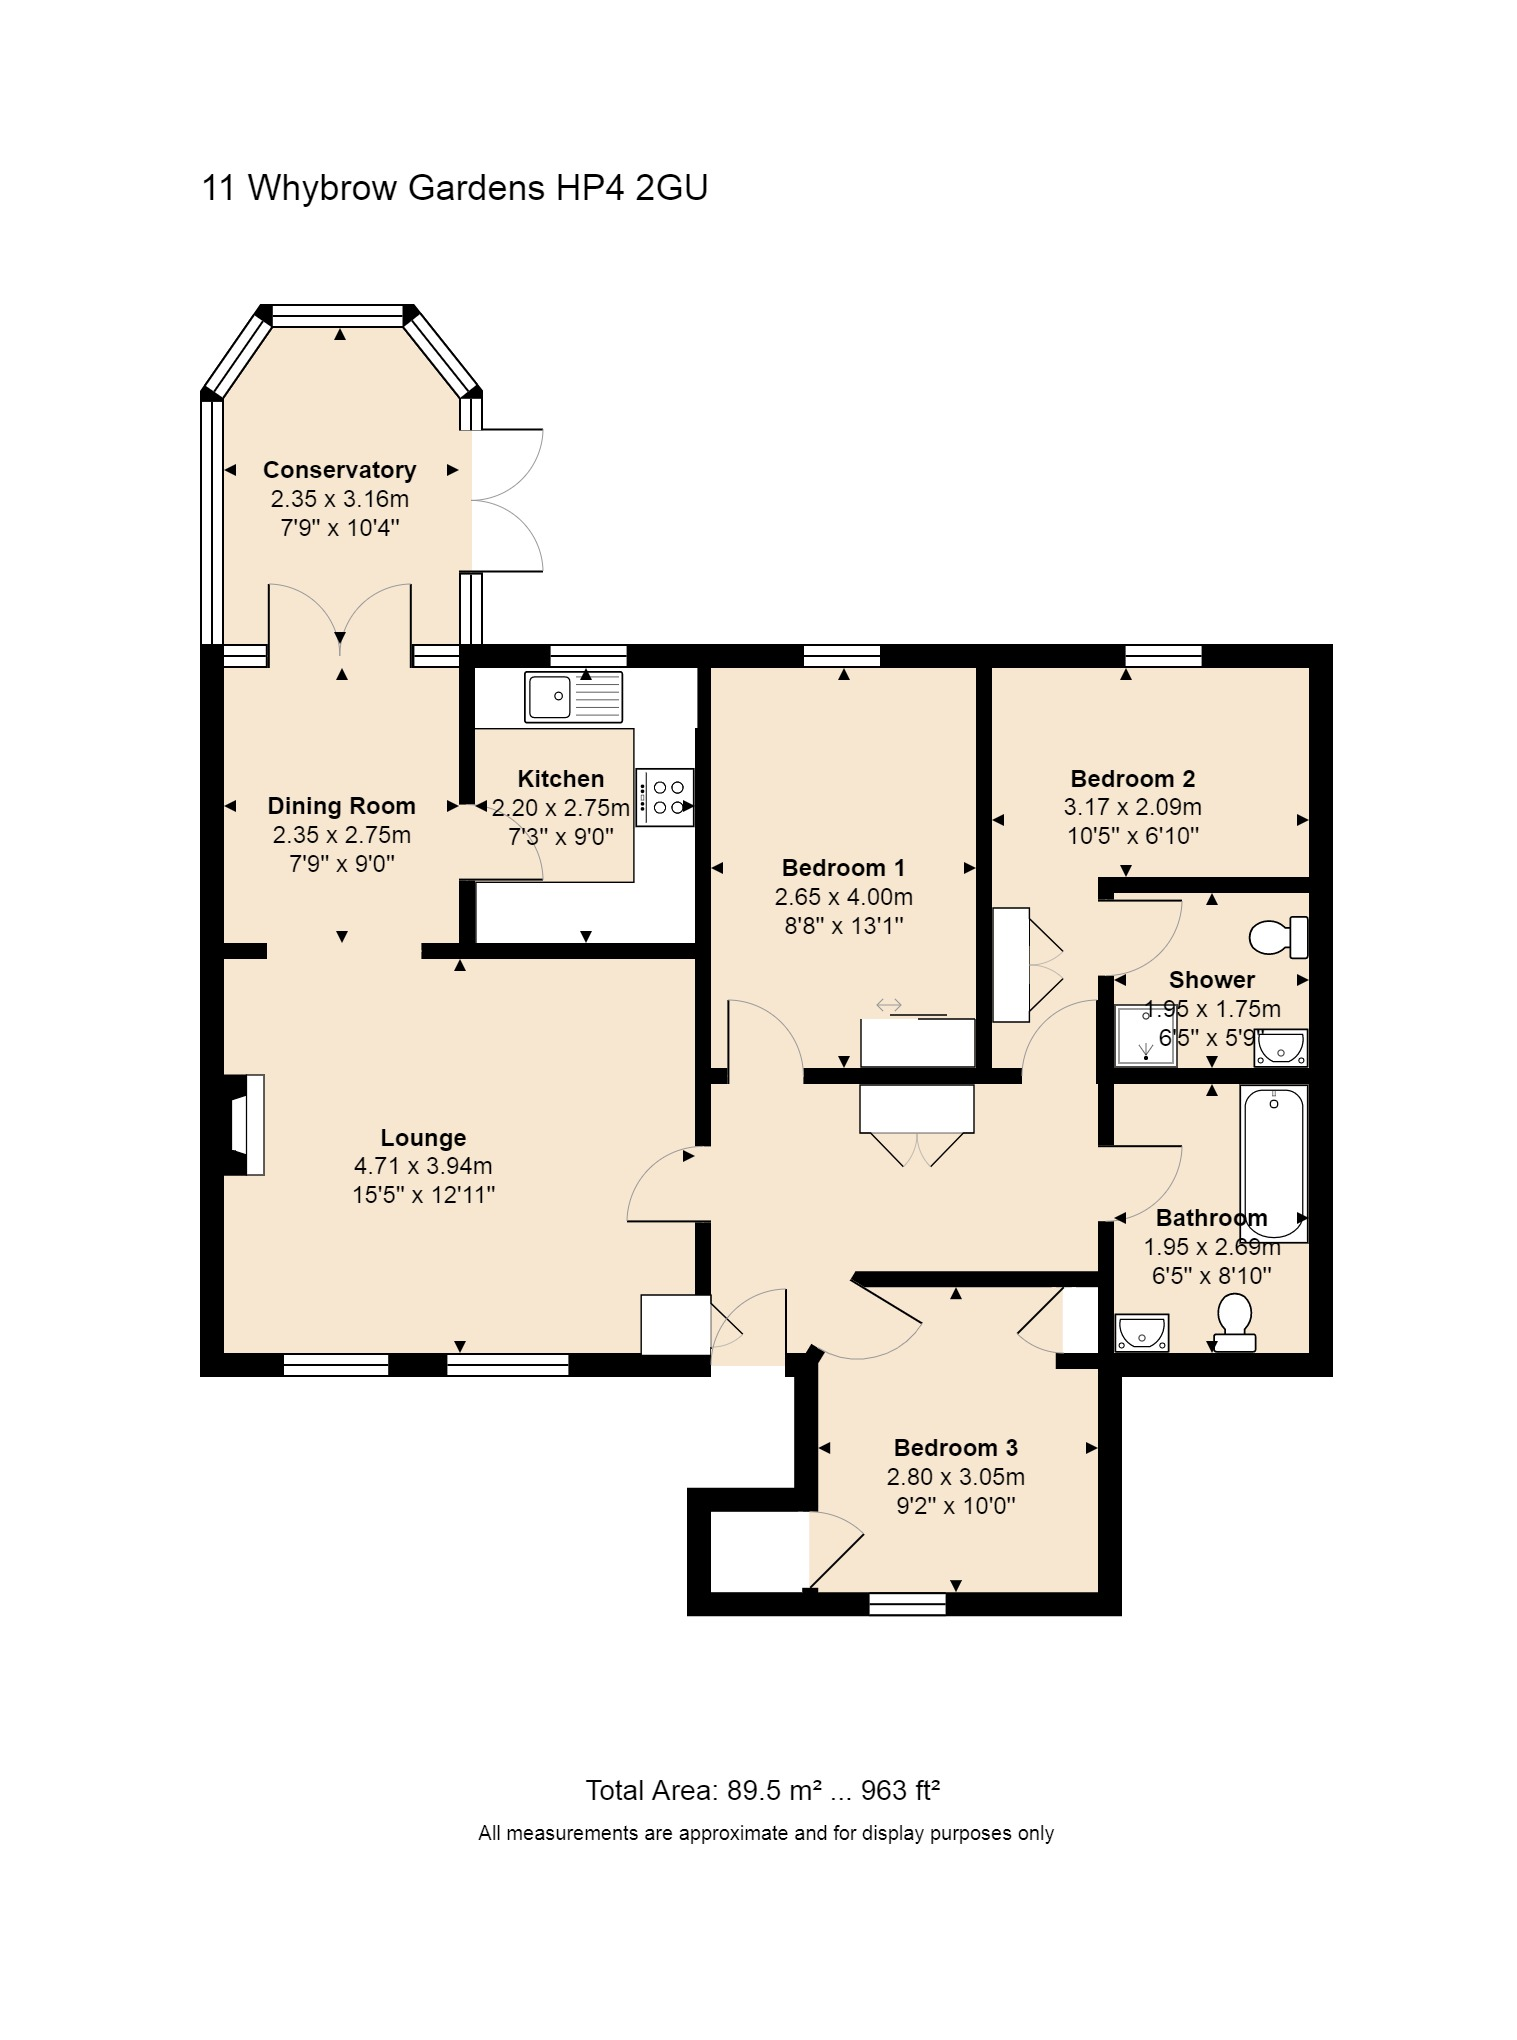 11 Whybrow Gardens Floorplan